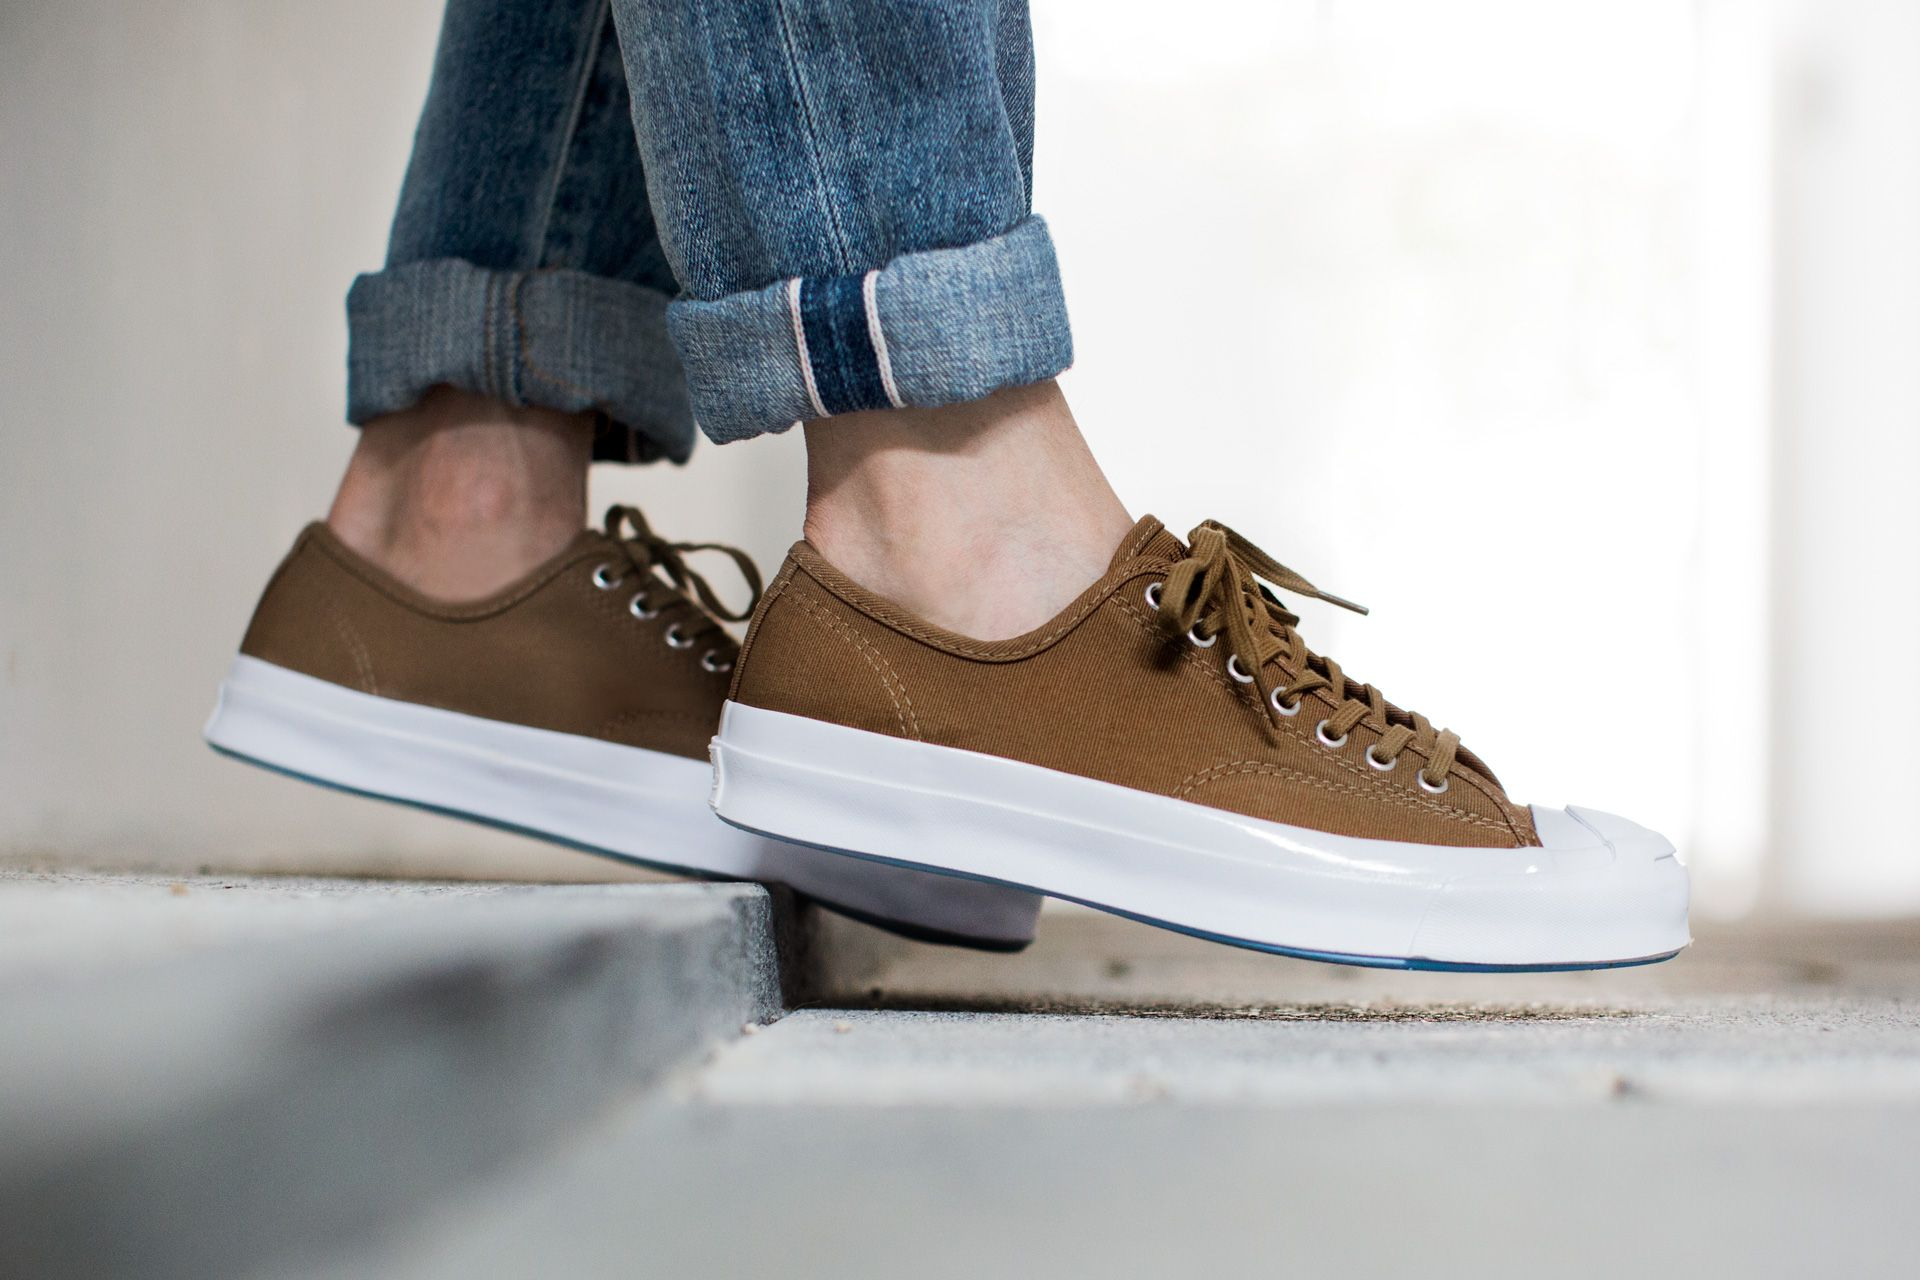 CONVERSE JACK PURCELL SIGNATURE OX SAND DUNE NA available at  www.tint-footwear.com converse-jack-purcell-149914c converse jack purcell  classic retro sneaker ... babe7da11